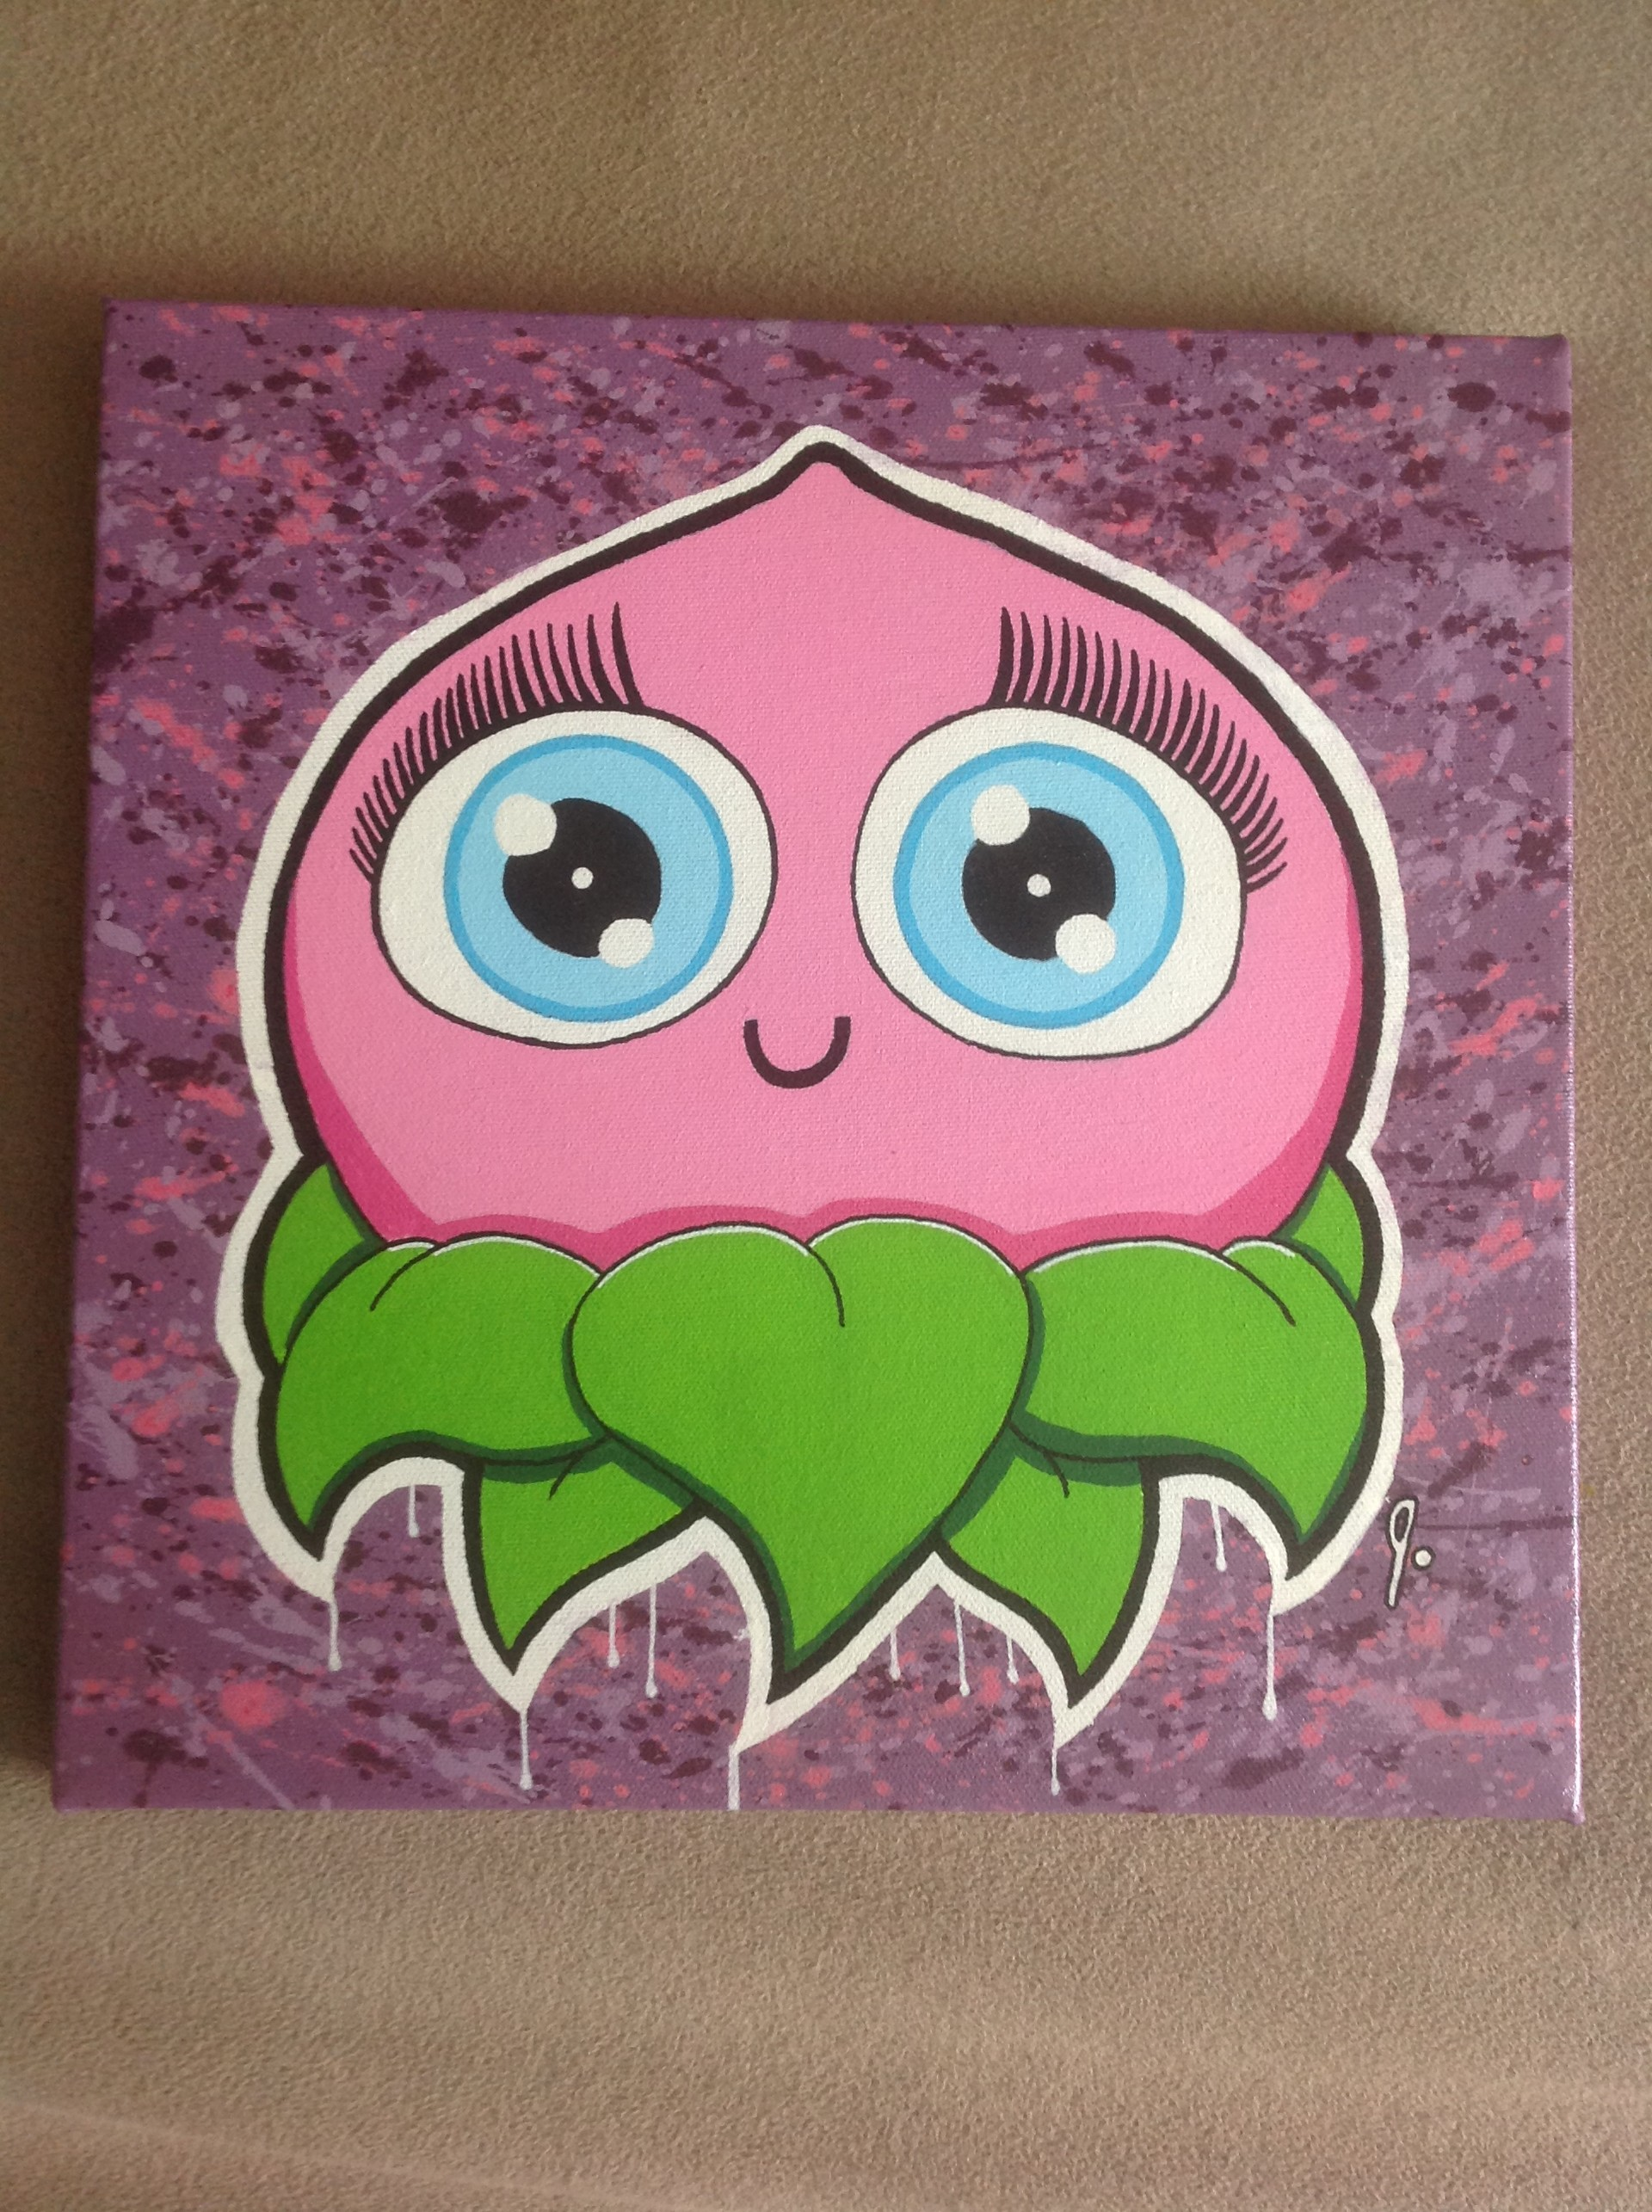 'Pretty Peach'